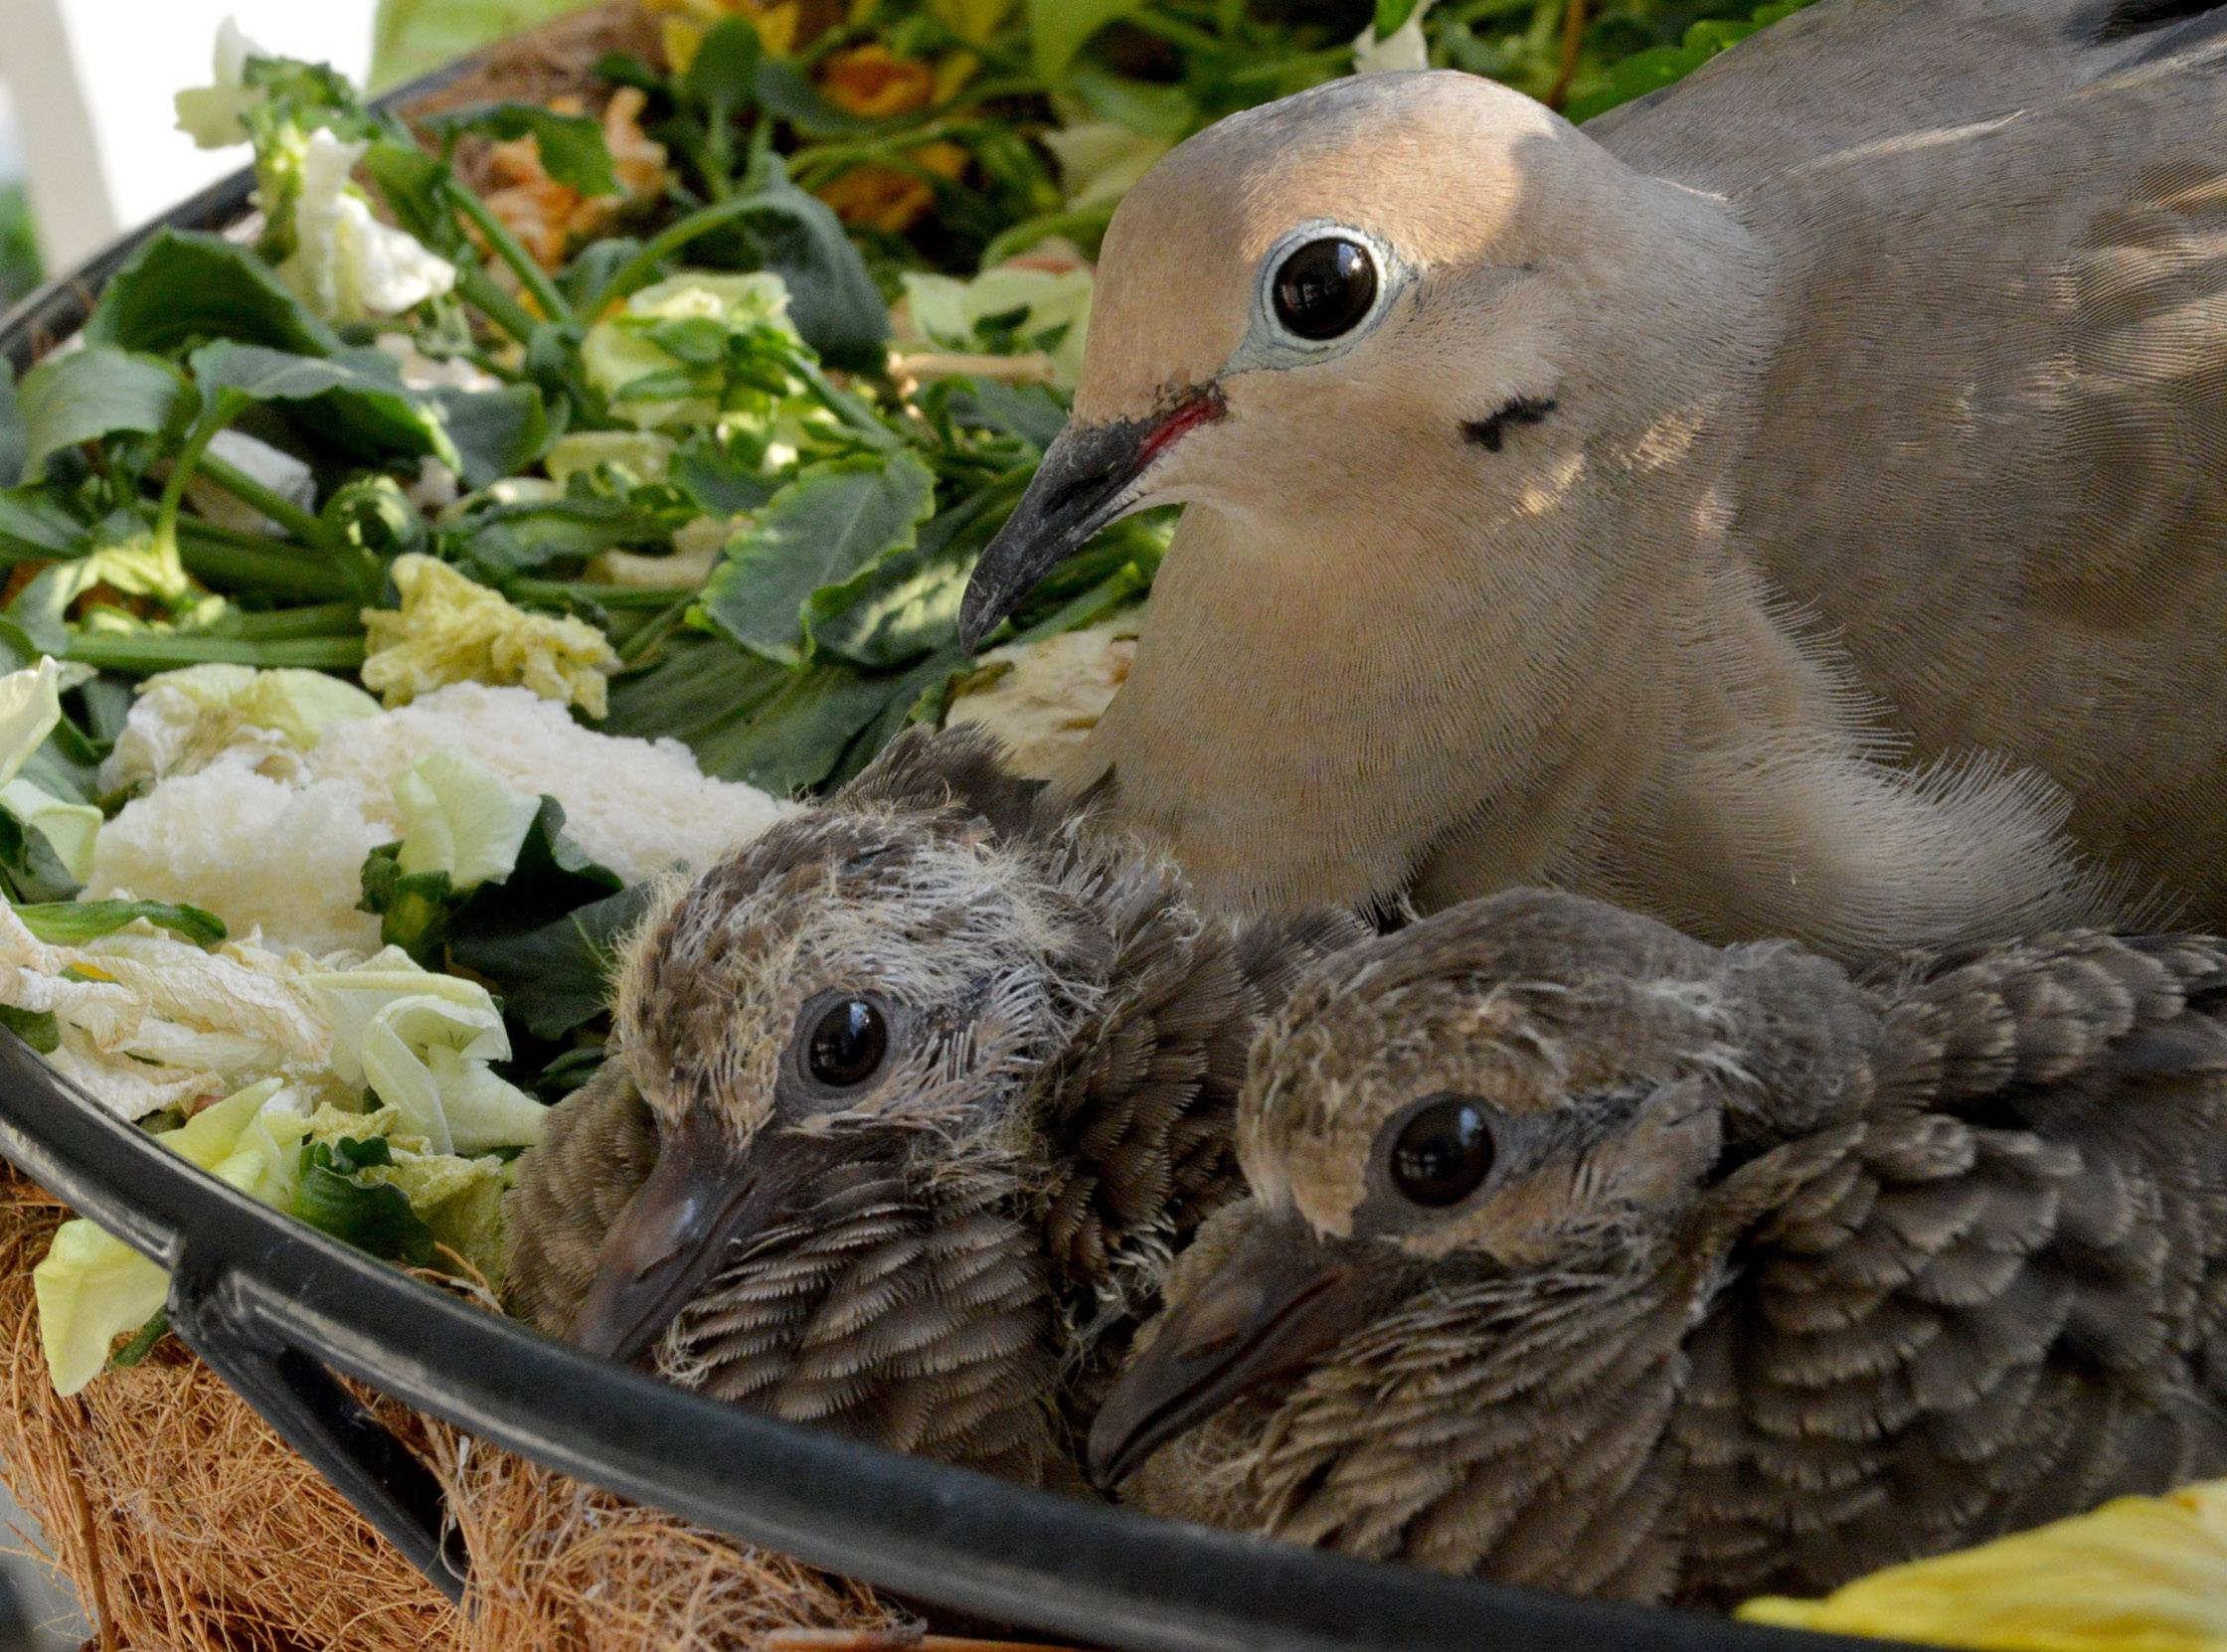 Two newly hatched birds lay next to their mother last week in a hanging plant basket in Grayslake.